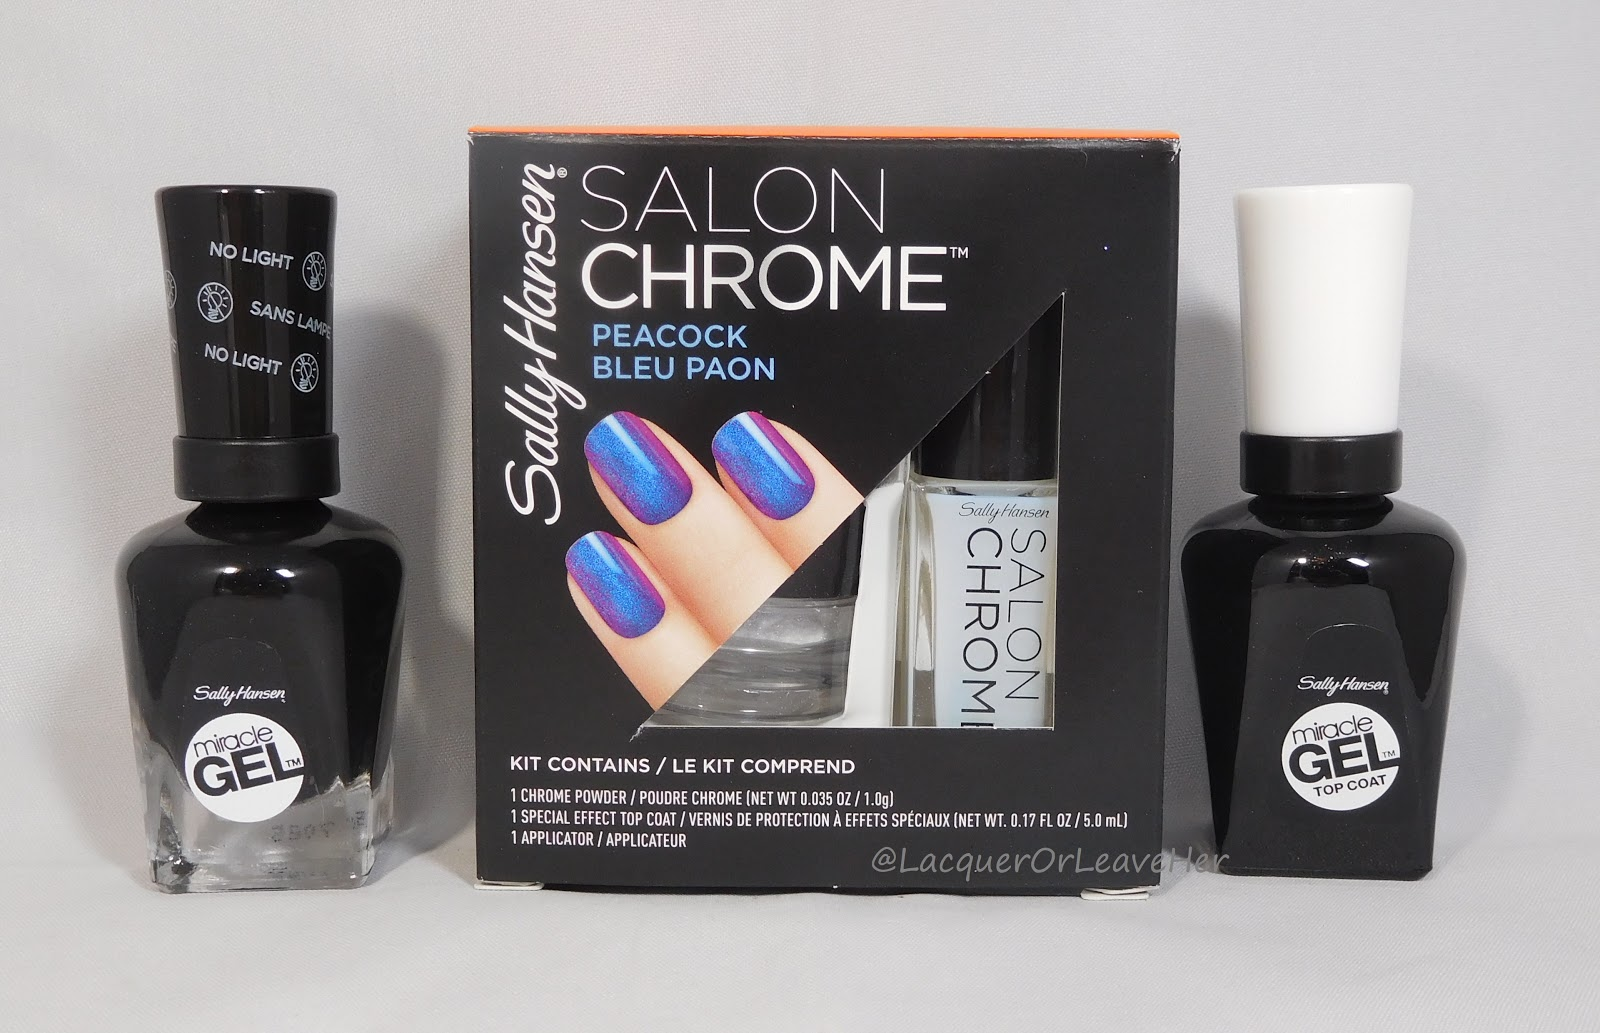 Lacquer or Leave Her!: Review: Sally Hansen Salon Chrome kit